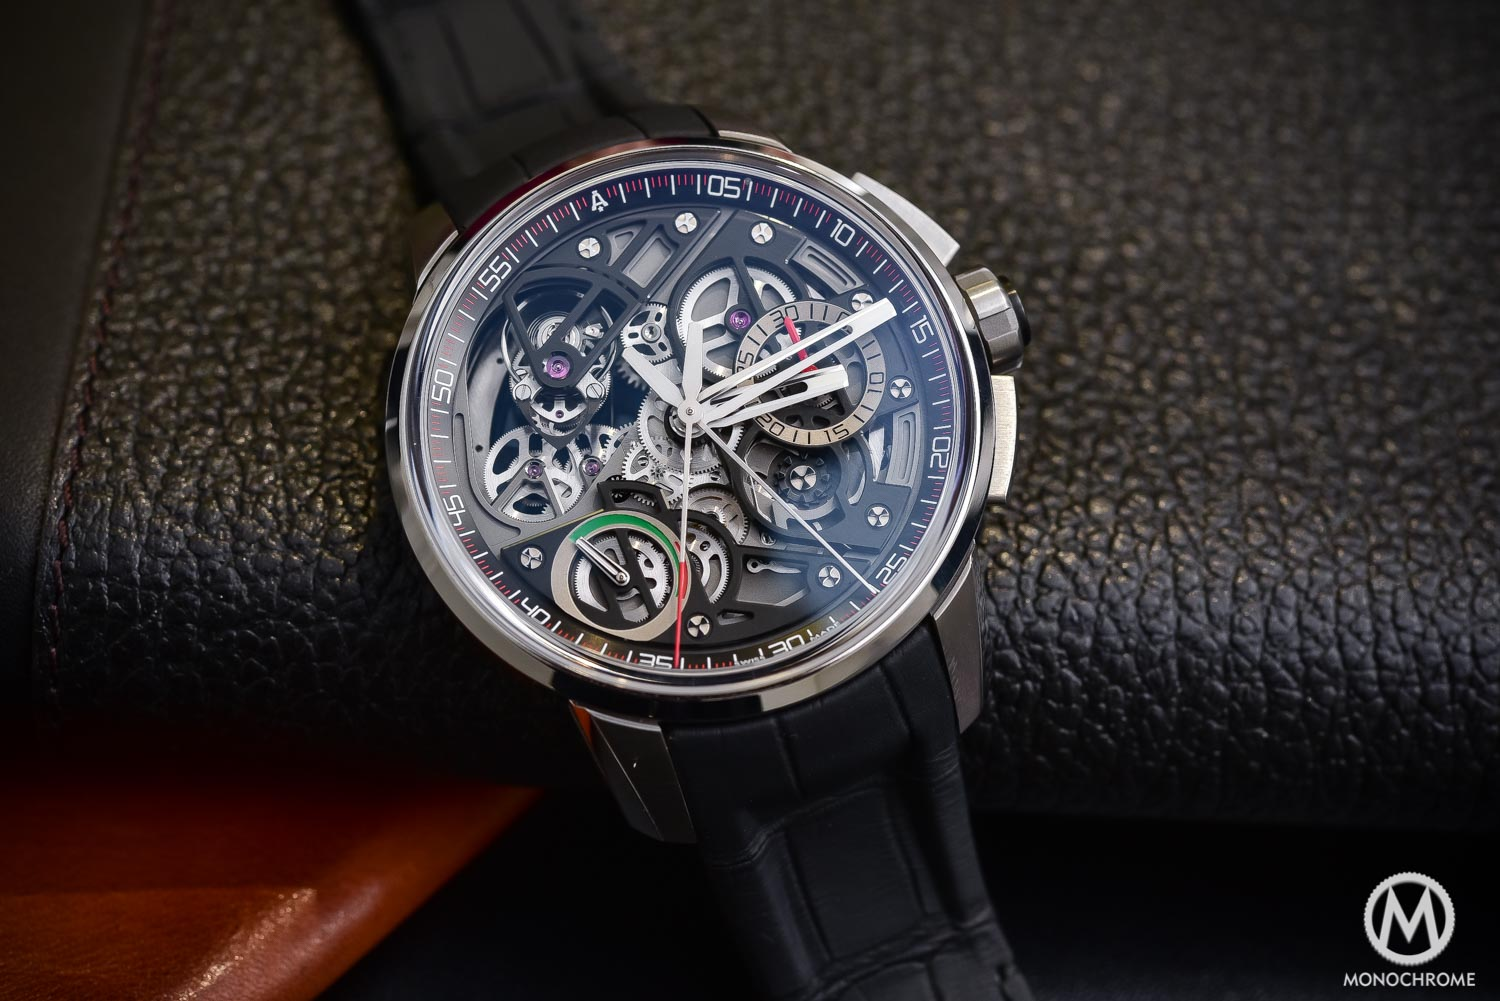 Hands-on with the Hyper-Technical Angelus U30 Tourbillon ...